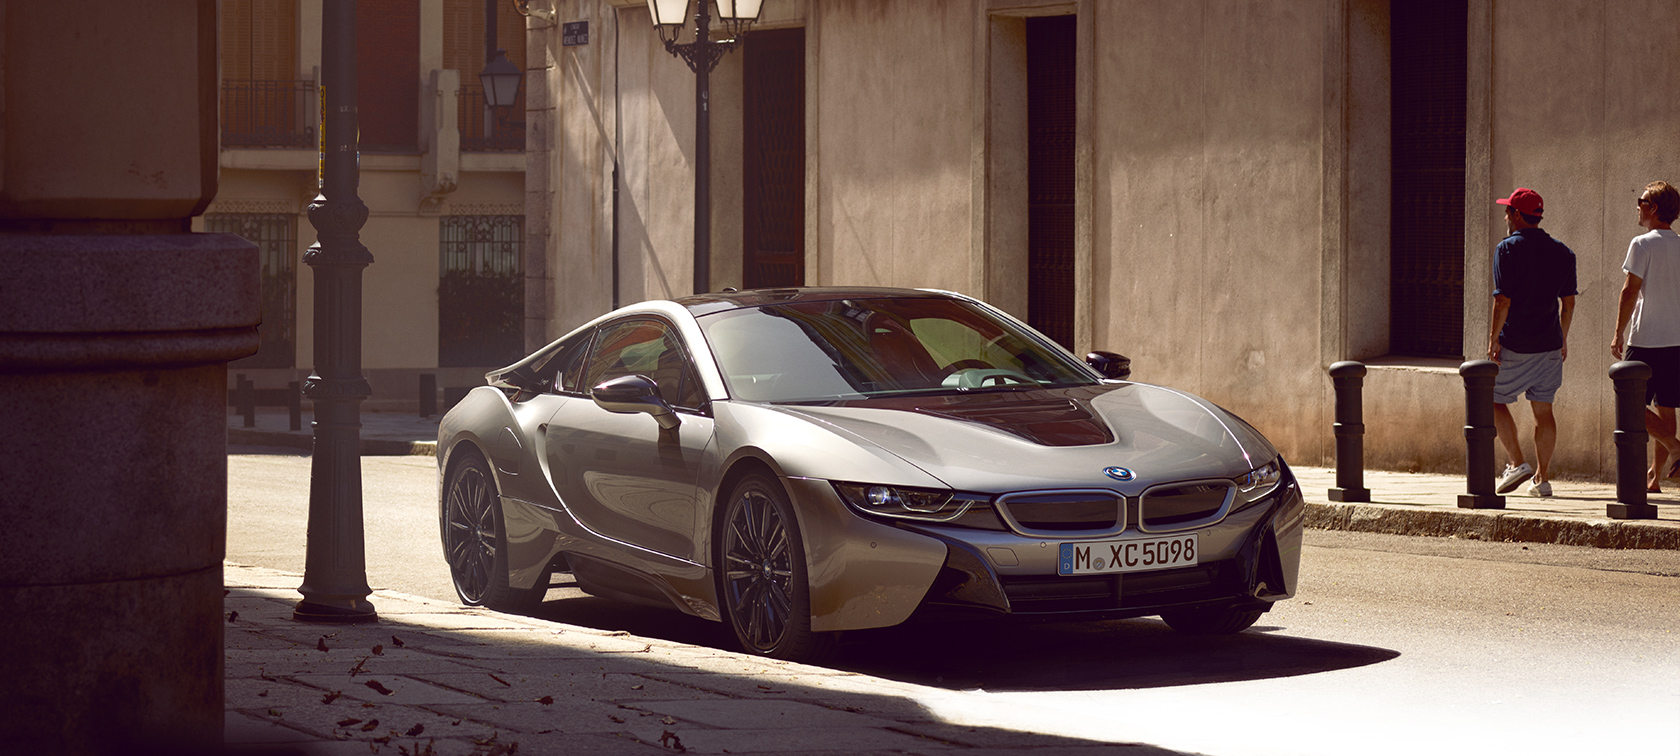 The new BMW i8 Coupé.